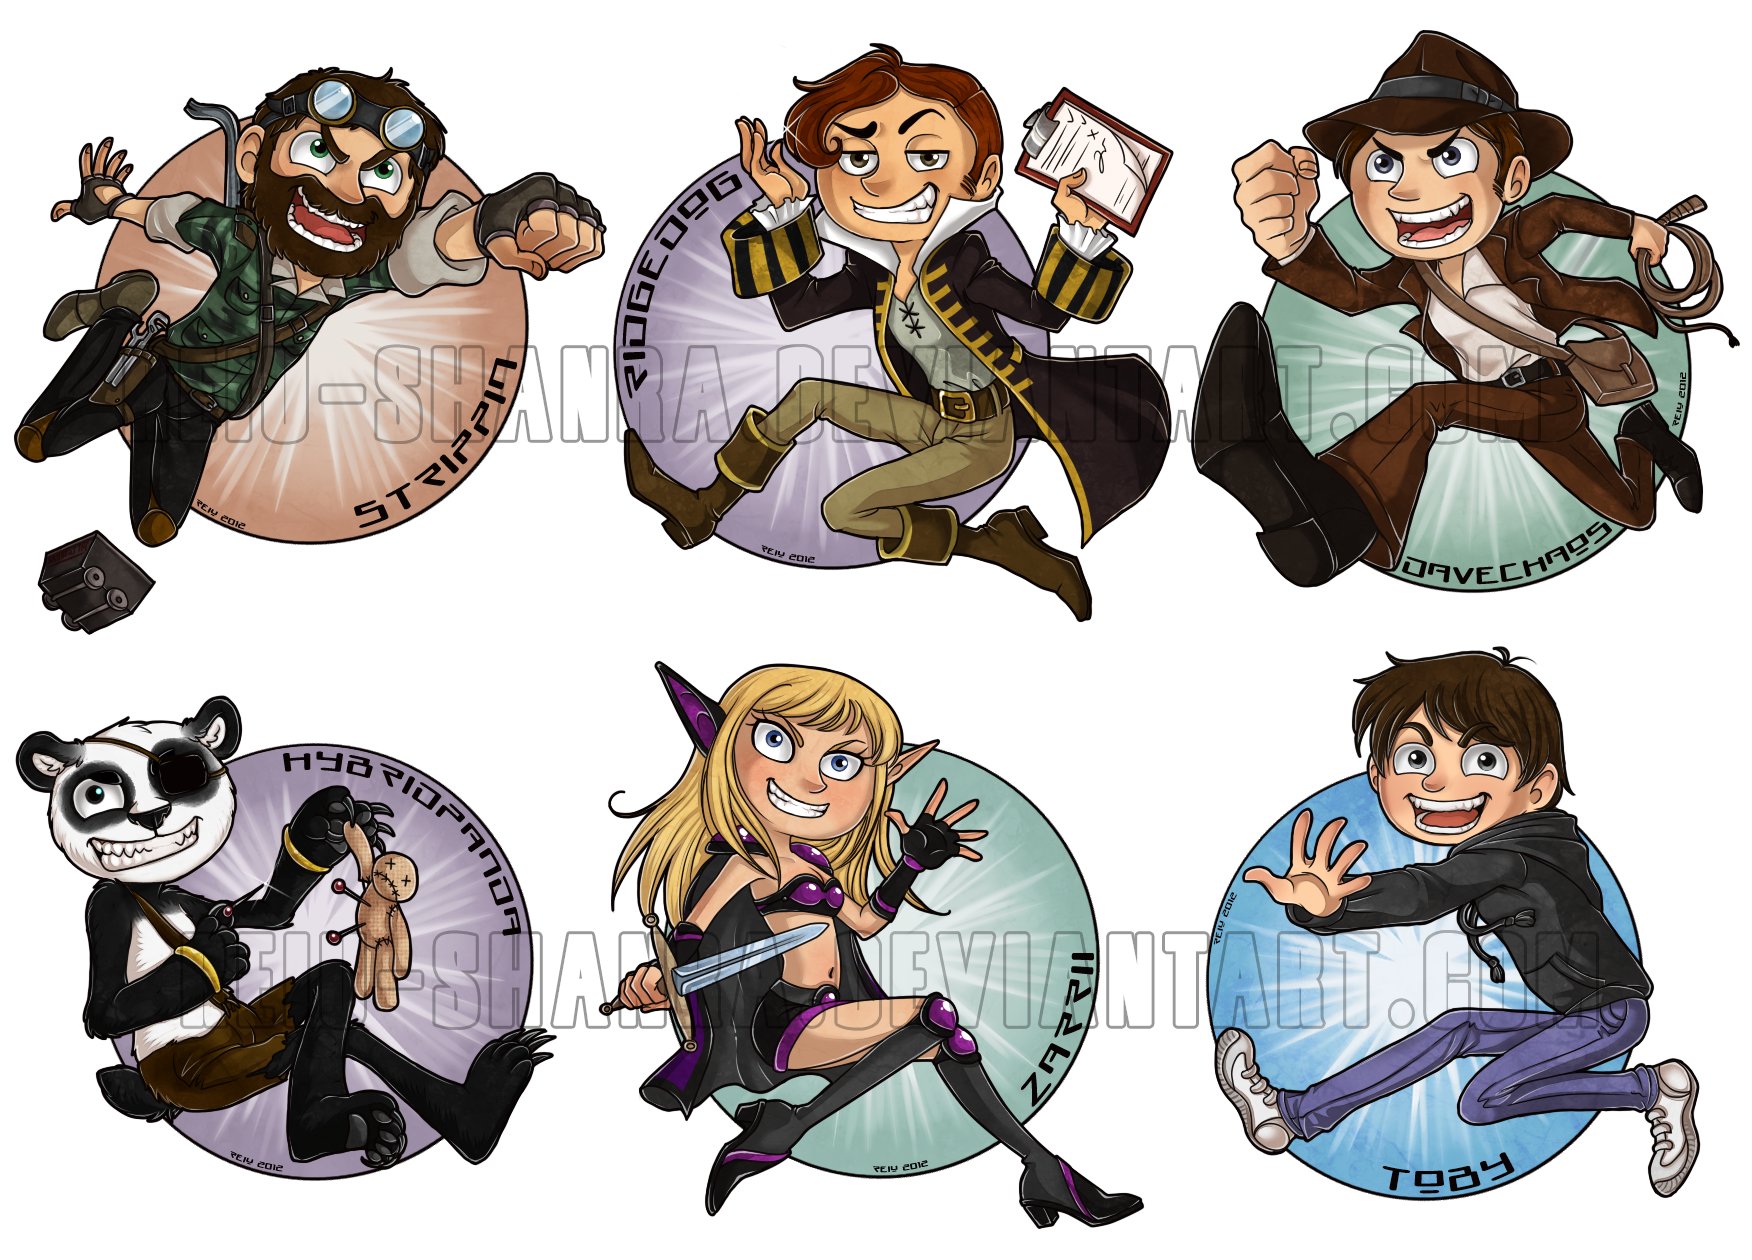 the yogscast part 3 by reiu shanra on deviantart